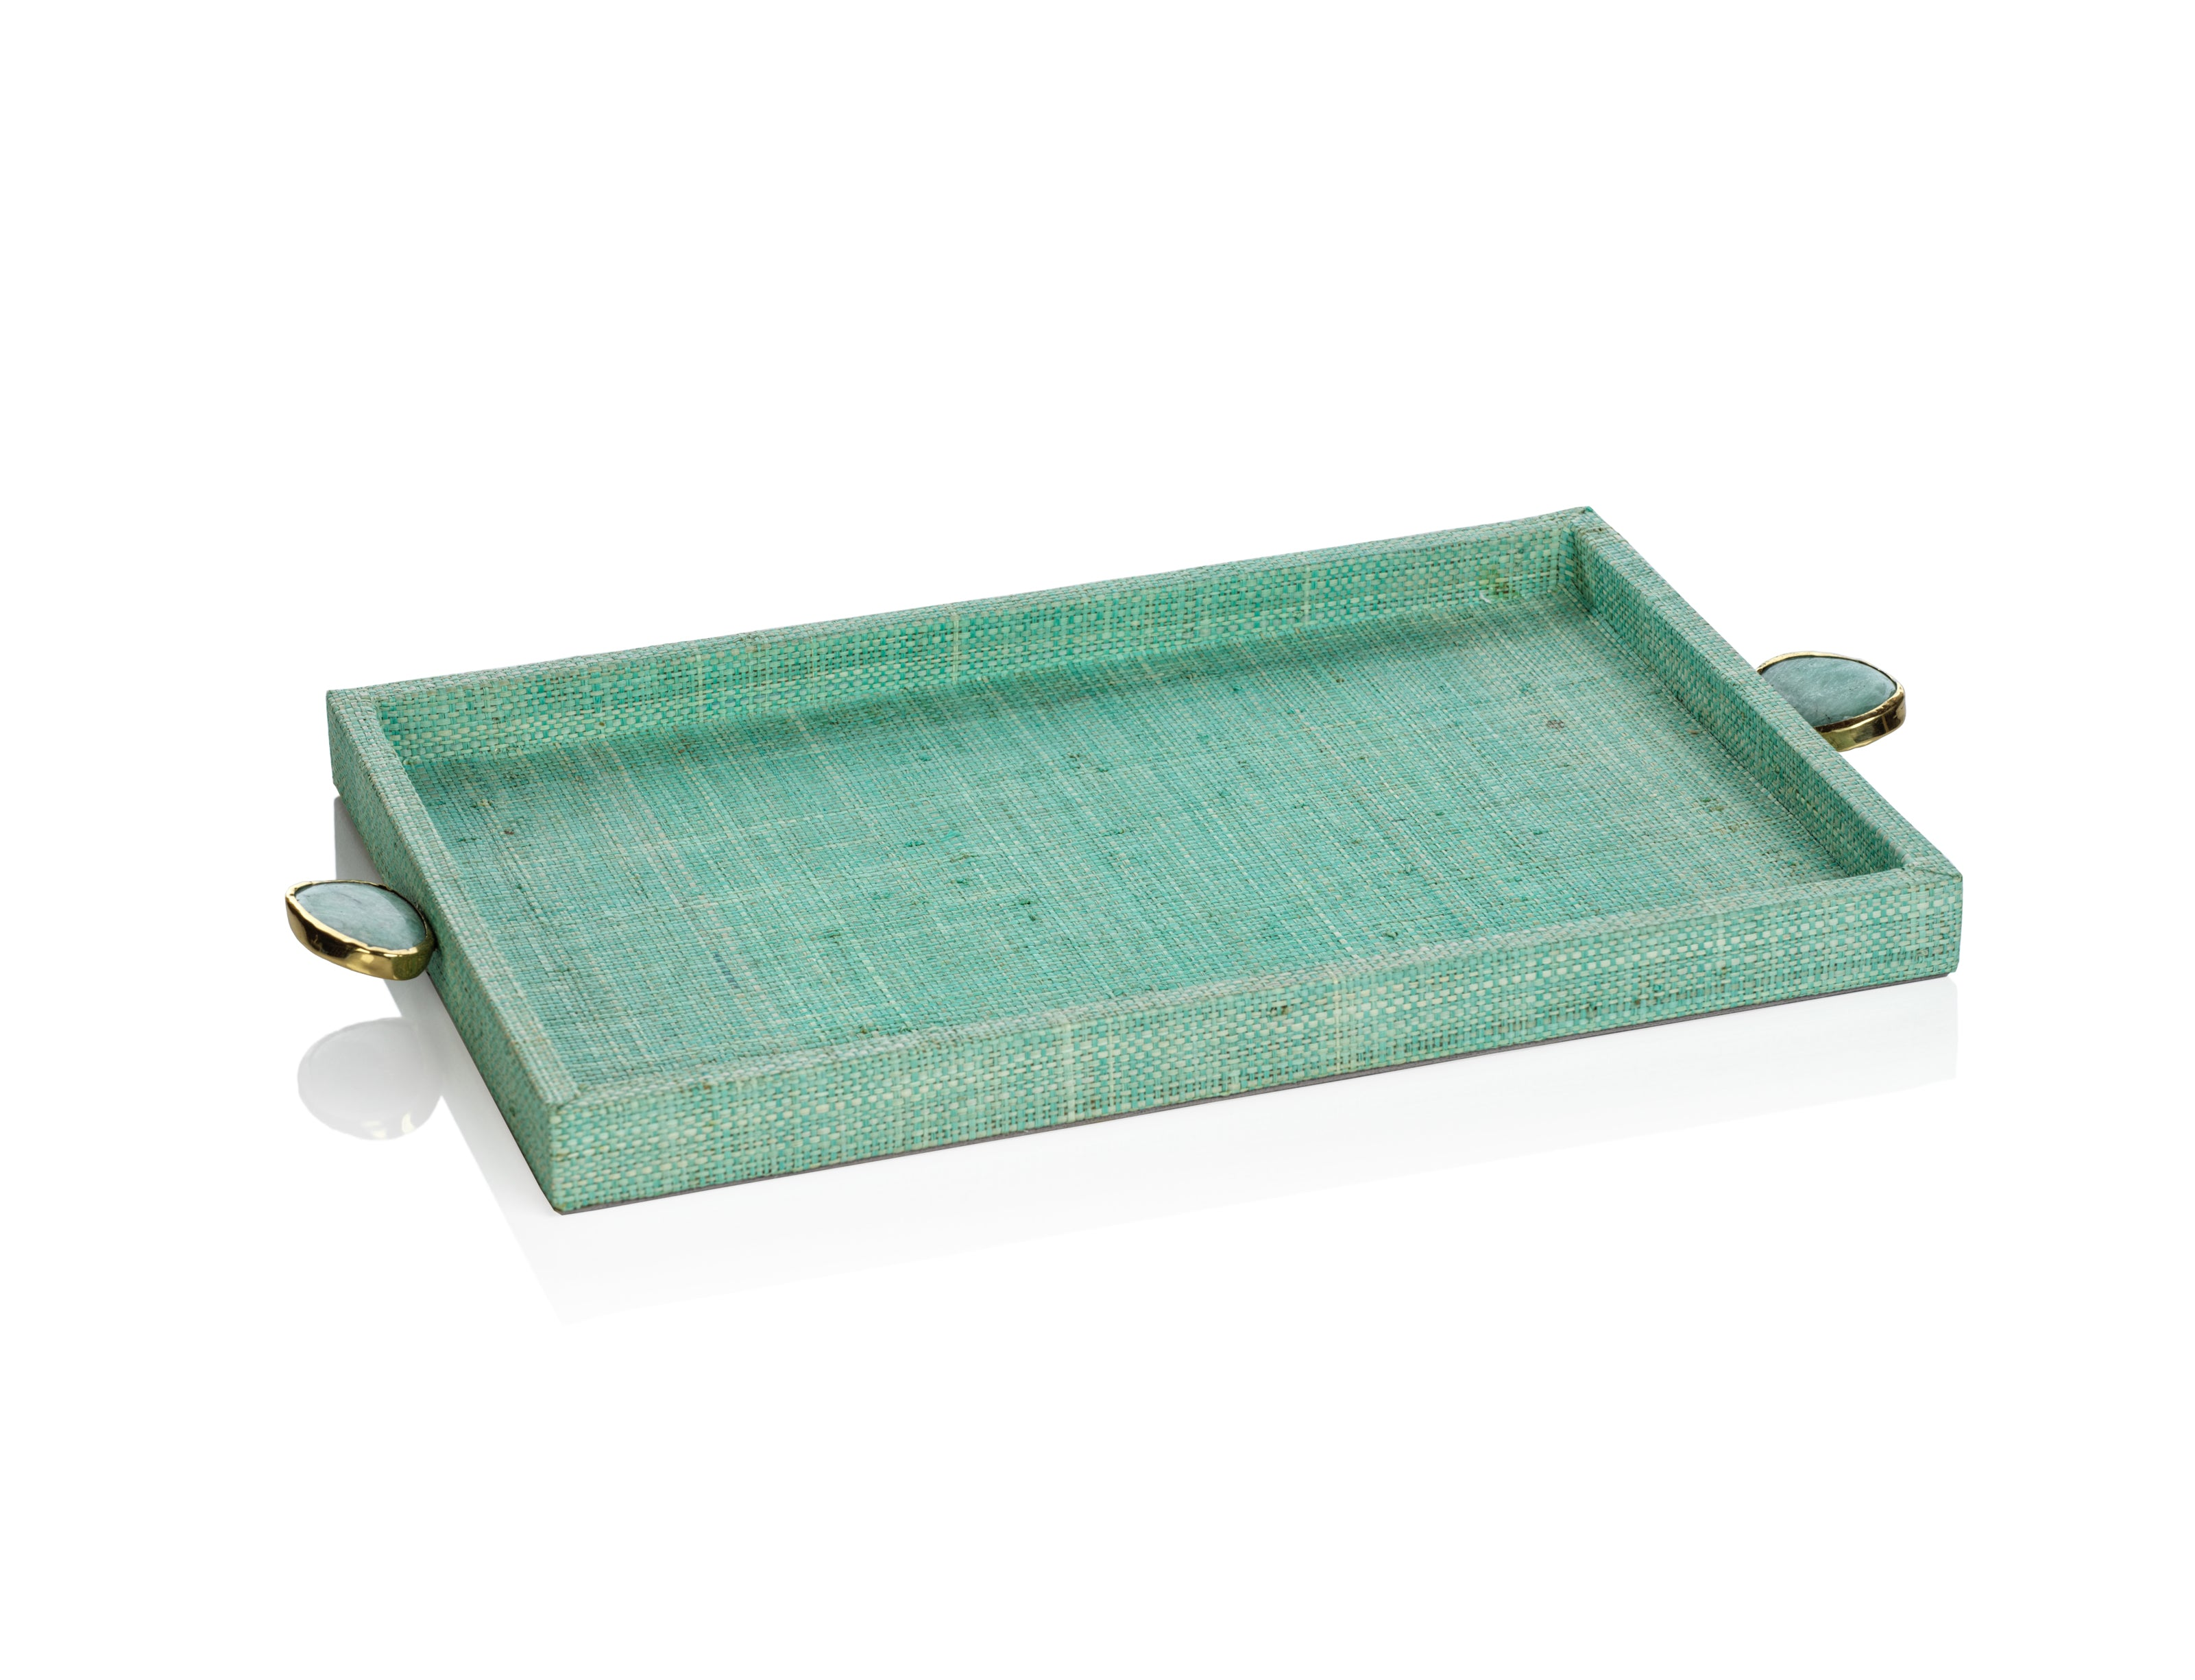 Raffia Palm Tray with Stone Accent - Jade - CARLYLE AVENUE